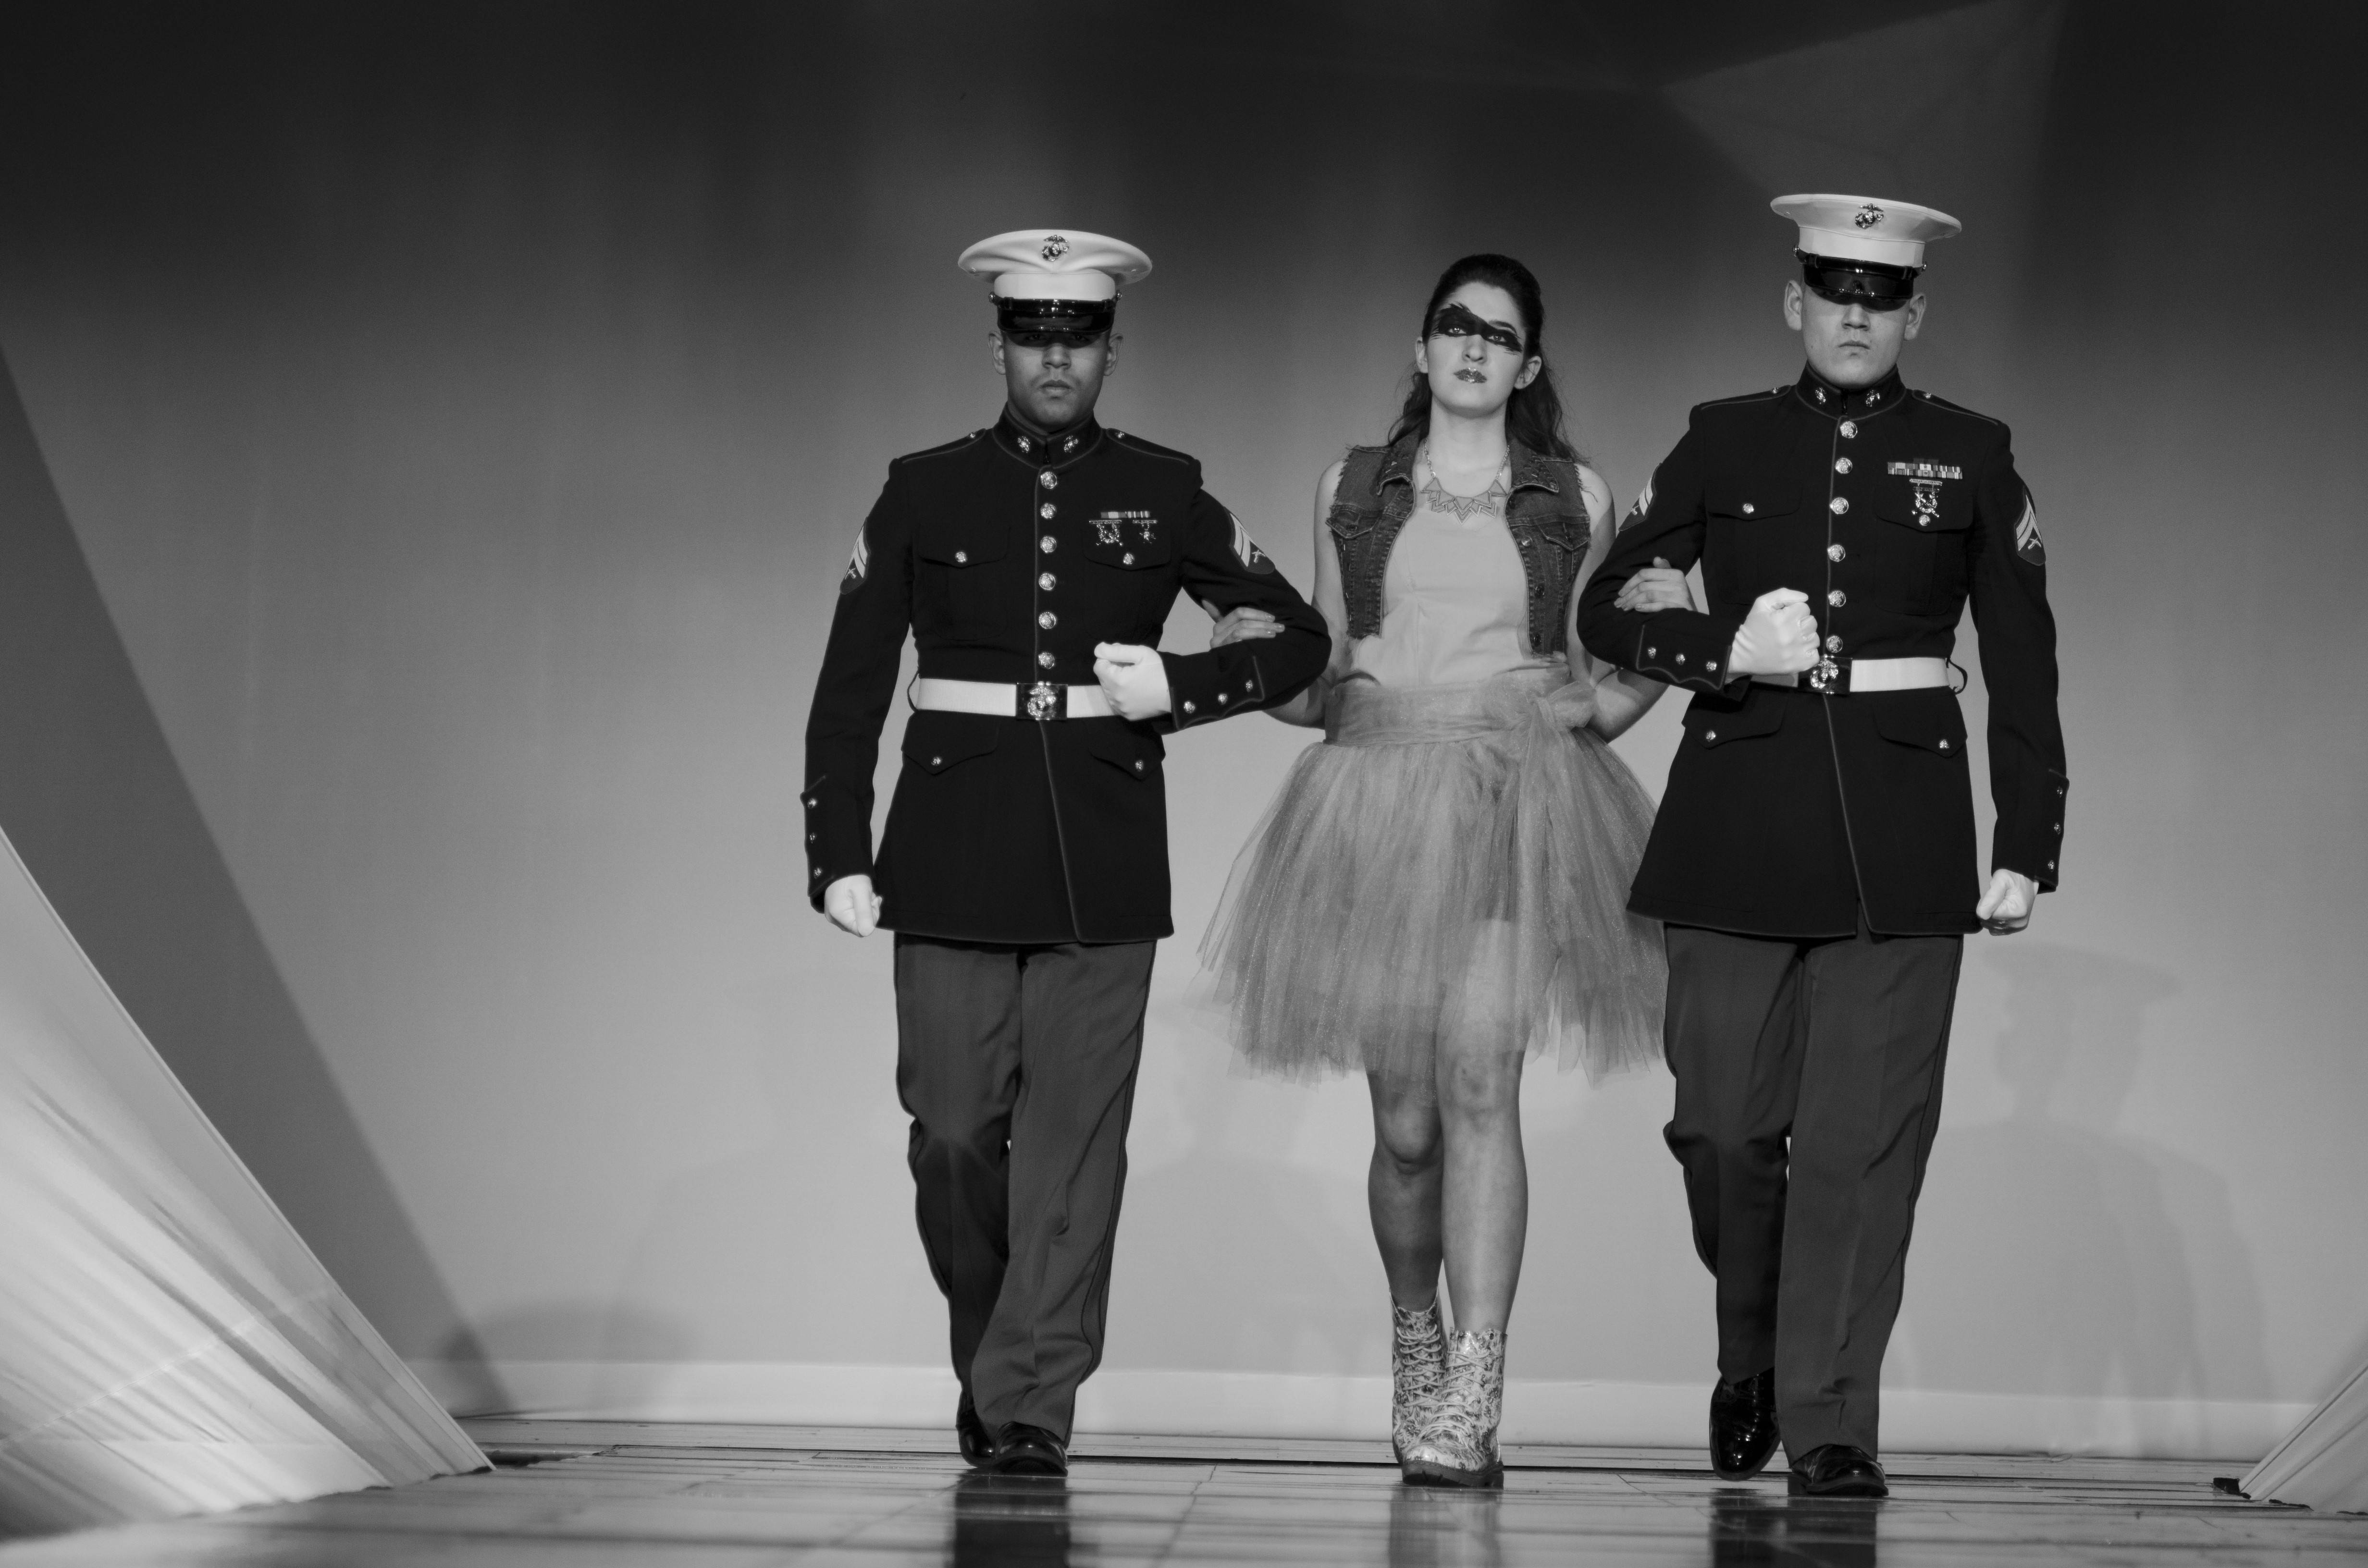 Joslyn De Norio, modeling her own design, is escorted by two Marines. The student-run fashion show raised more than $18,000 for Salute Inc. in Palatine, which helps veterans.